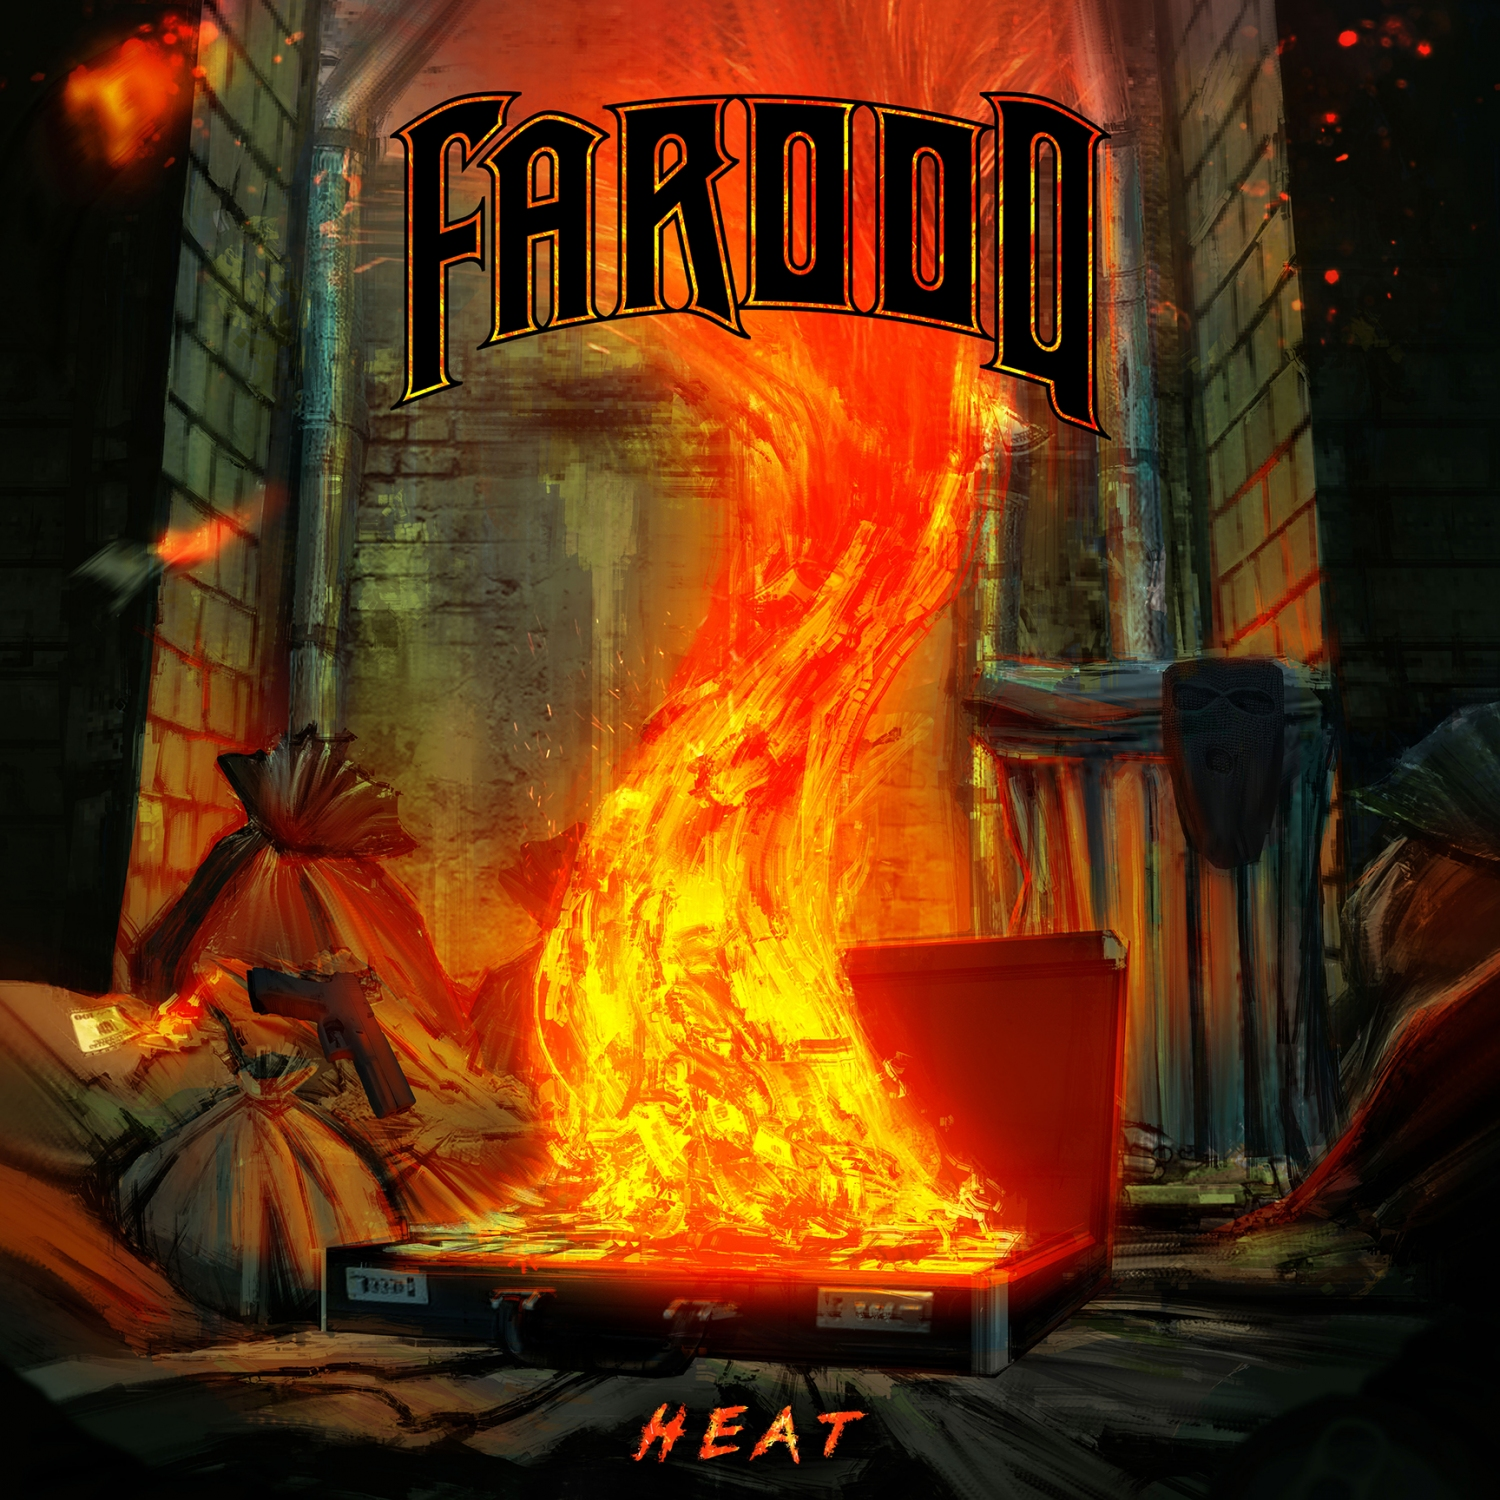 Every once in a while there comes a band that'll put out an album that will just blown your mind and get you pumped for the pit. FAROOQ are that band. On Aug 24, 2018 they will be releasing their new album HEAT on Glacier Recordings.    At the start of pushing play, the entire album sparks the violent reaction of energy and emotion that I have sorely missed from music these days. Being a fan of hardcore and metal music, Farooq effortlessly blends these two genres to perfection while also being unique in their sound, by adding elements of hip hop and guitar wizardry. The album is simple, but yet it isn't which is hard t explain. The groove and balls to the wall attitude are genuine and forefront. Yet there are layers of complexity in terms of lyrics and musicianship.     Their latest single titled  Stone Cold Steve Hawking  is a perfect example of just how thought invoking they can be; tackling topics of religion using metaphorical scientific references. All the while you get pummeled by metallic riff driven guitars, down trodden bass and arm flinging drumming.    Their precious single happens to one of my favorite song off this release.  Owning It  has the speed, anger, beat downs and chaos that makes me want to get in the pit and lose my mind, not giving a fuck how old I am.     This album easily makes my top ten in recent memory. I can't thank FAROOQ enough for making an album that just blows my mind and makes me hopeful that the music I love is left in good and capable hands.      https://youtu.be/kHIz01qSt7g     Tracklisting:    1. Owning It    2. Get 2 Work    3. T.O.T.W. 2018    4. Mall Metal    5. The Story    6. Clown Clocks    7. One Nation Under    8. E-Male    9. It's 2AM Somewhere    10. Stone Cold Steve Hawking    You can find Faroog online at the following:     https://www.instagram.com/farooqmosh      https://www.facebook.com/farooqmosh      https://farooqmosh.bandcamp.com      http://www.glacierrecordings.com      https://www.facebook.com/glacierreco